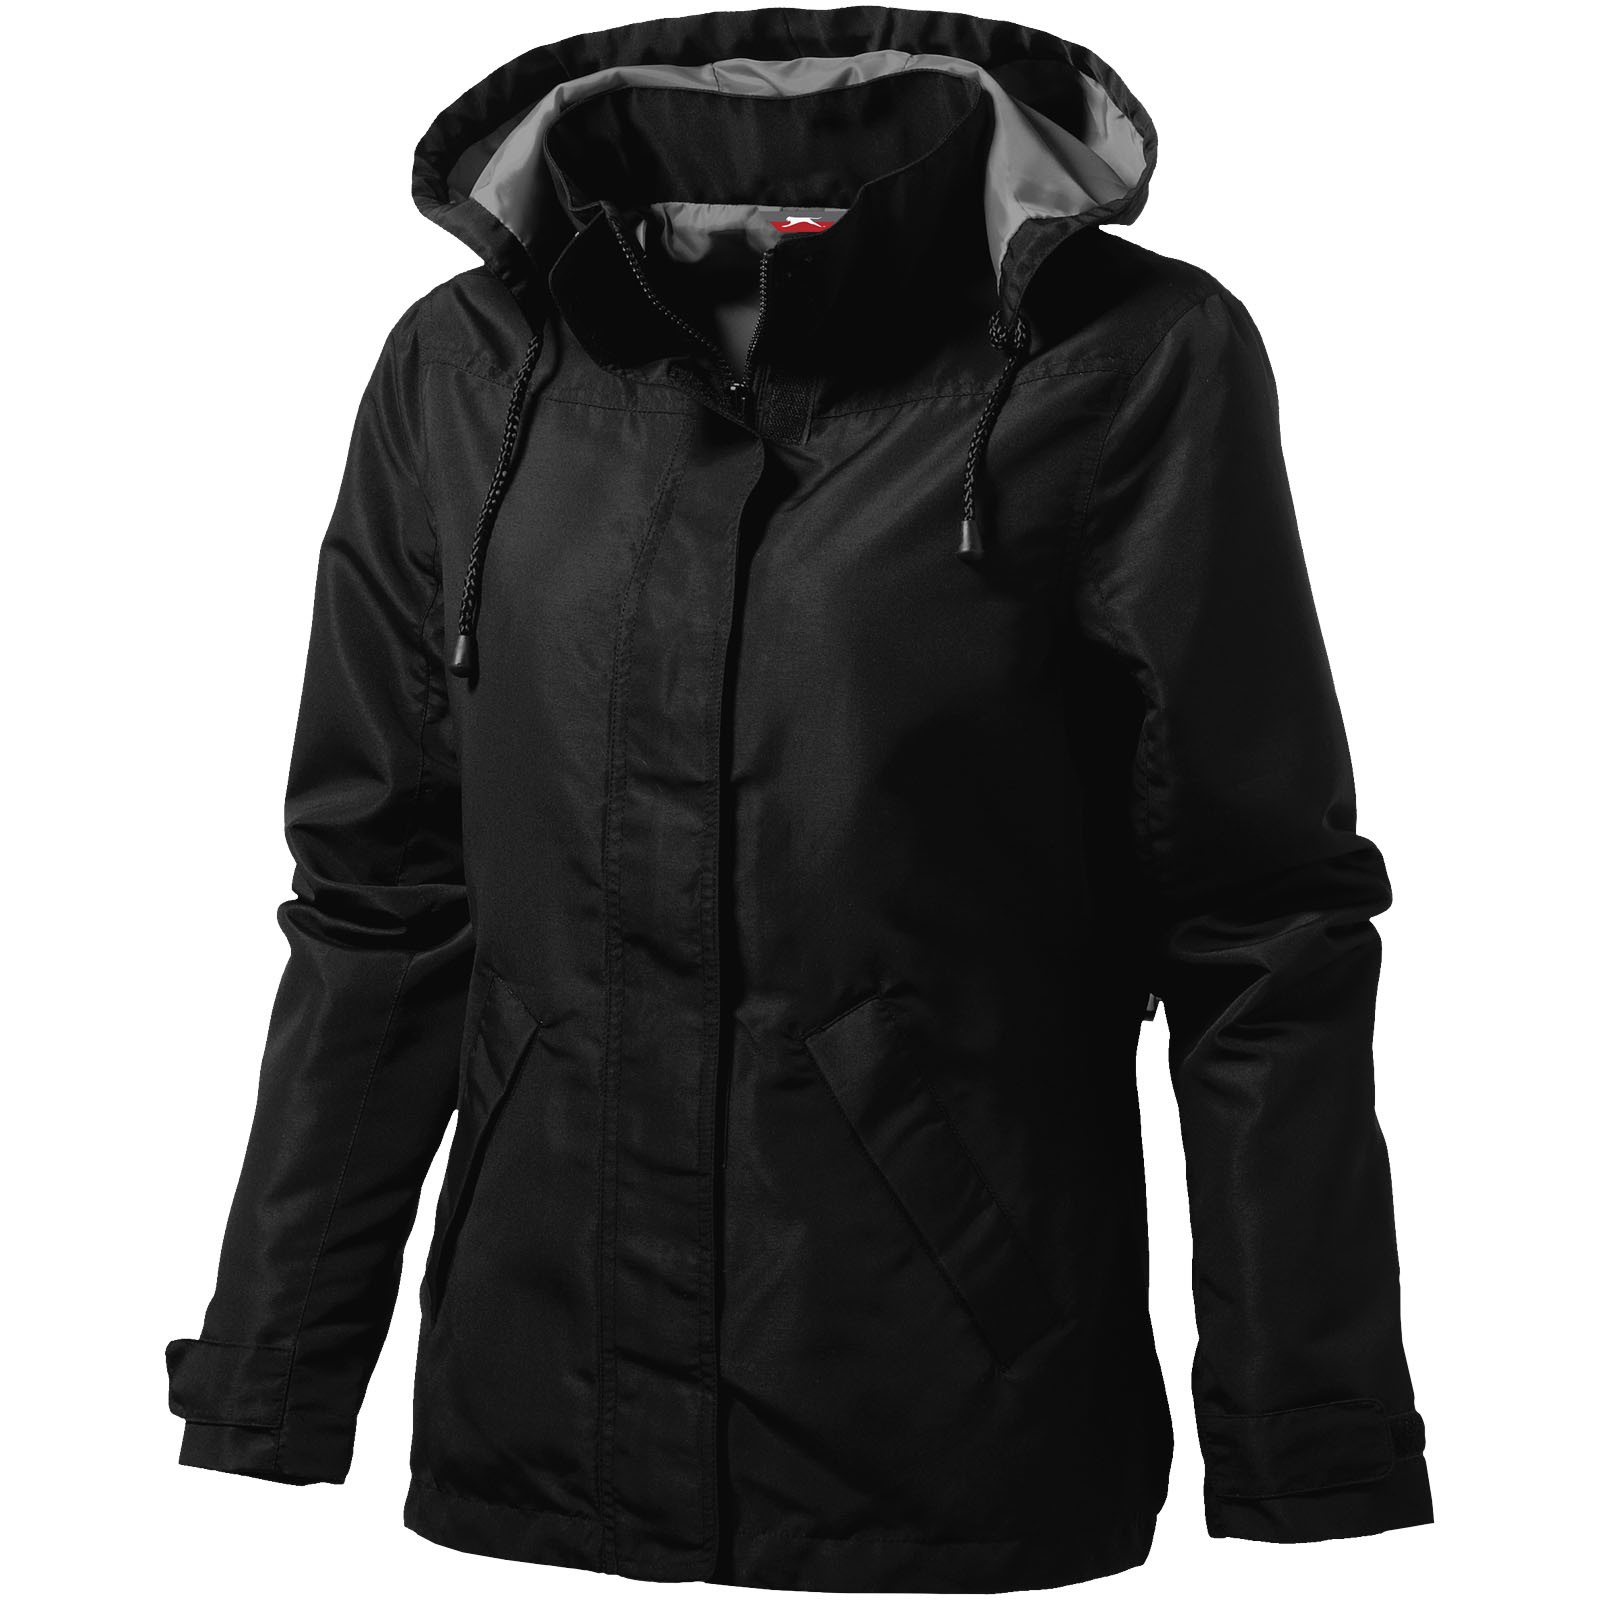 Top Spin ladies jacket 2fdcaea5f5